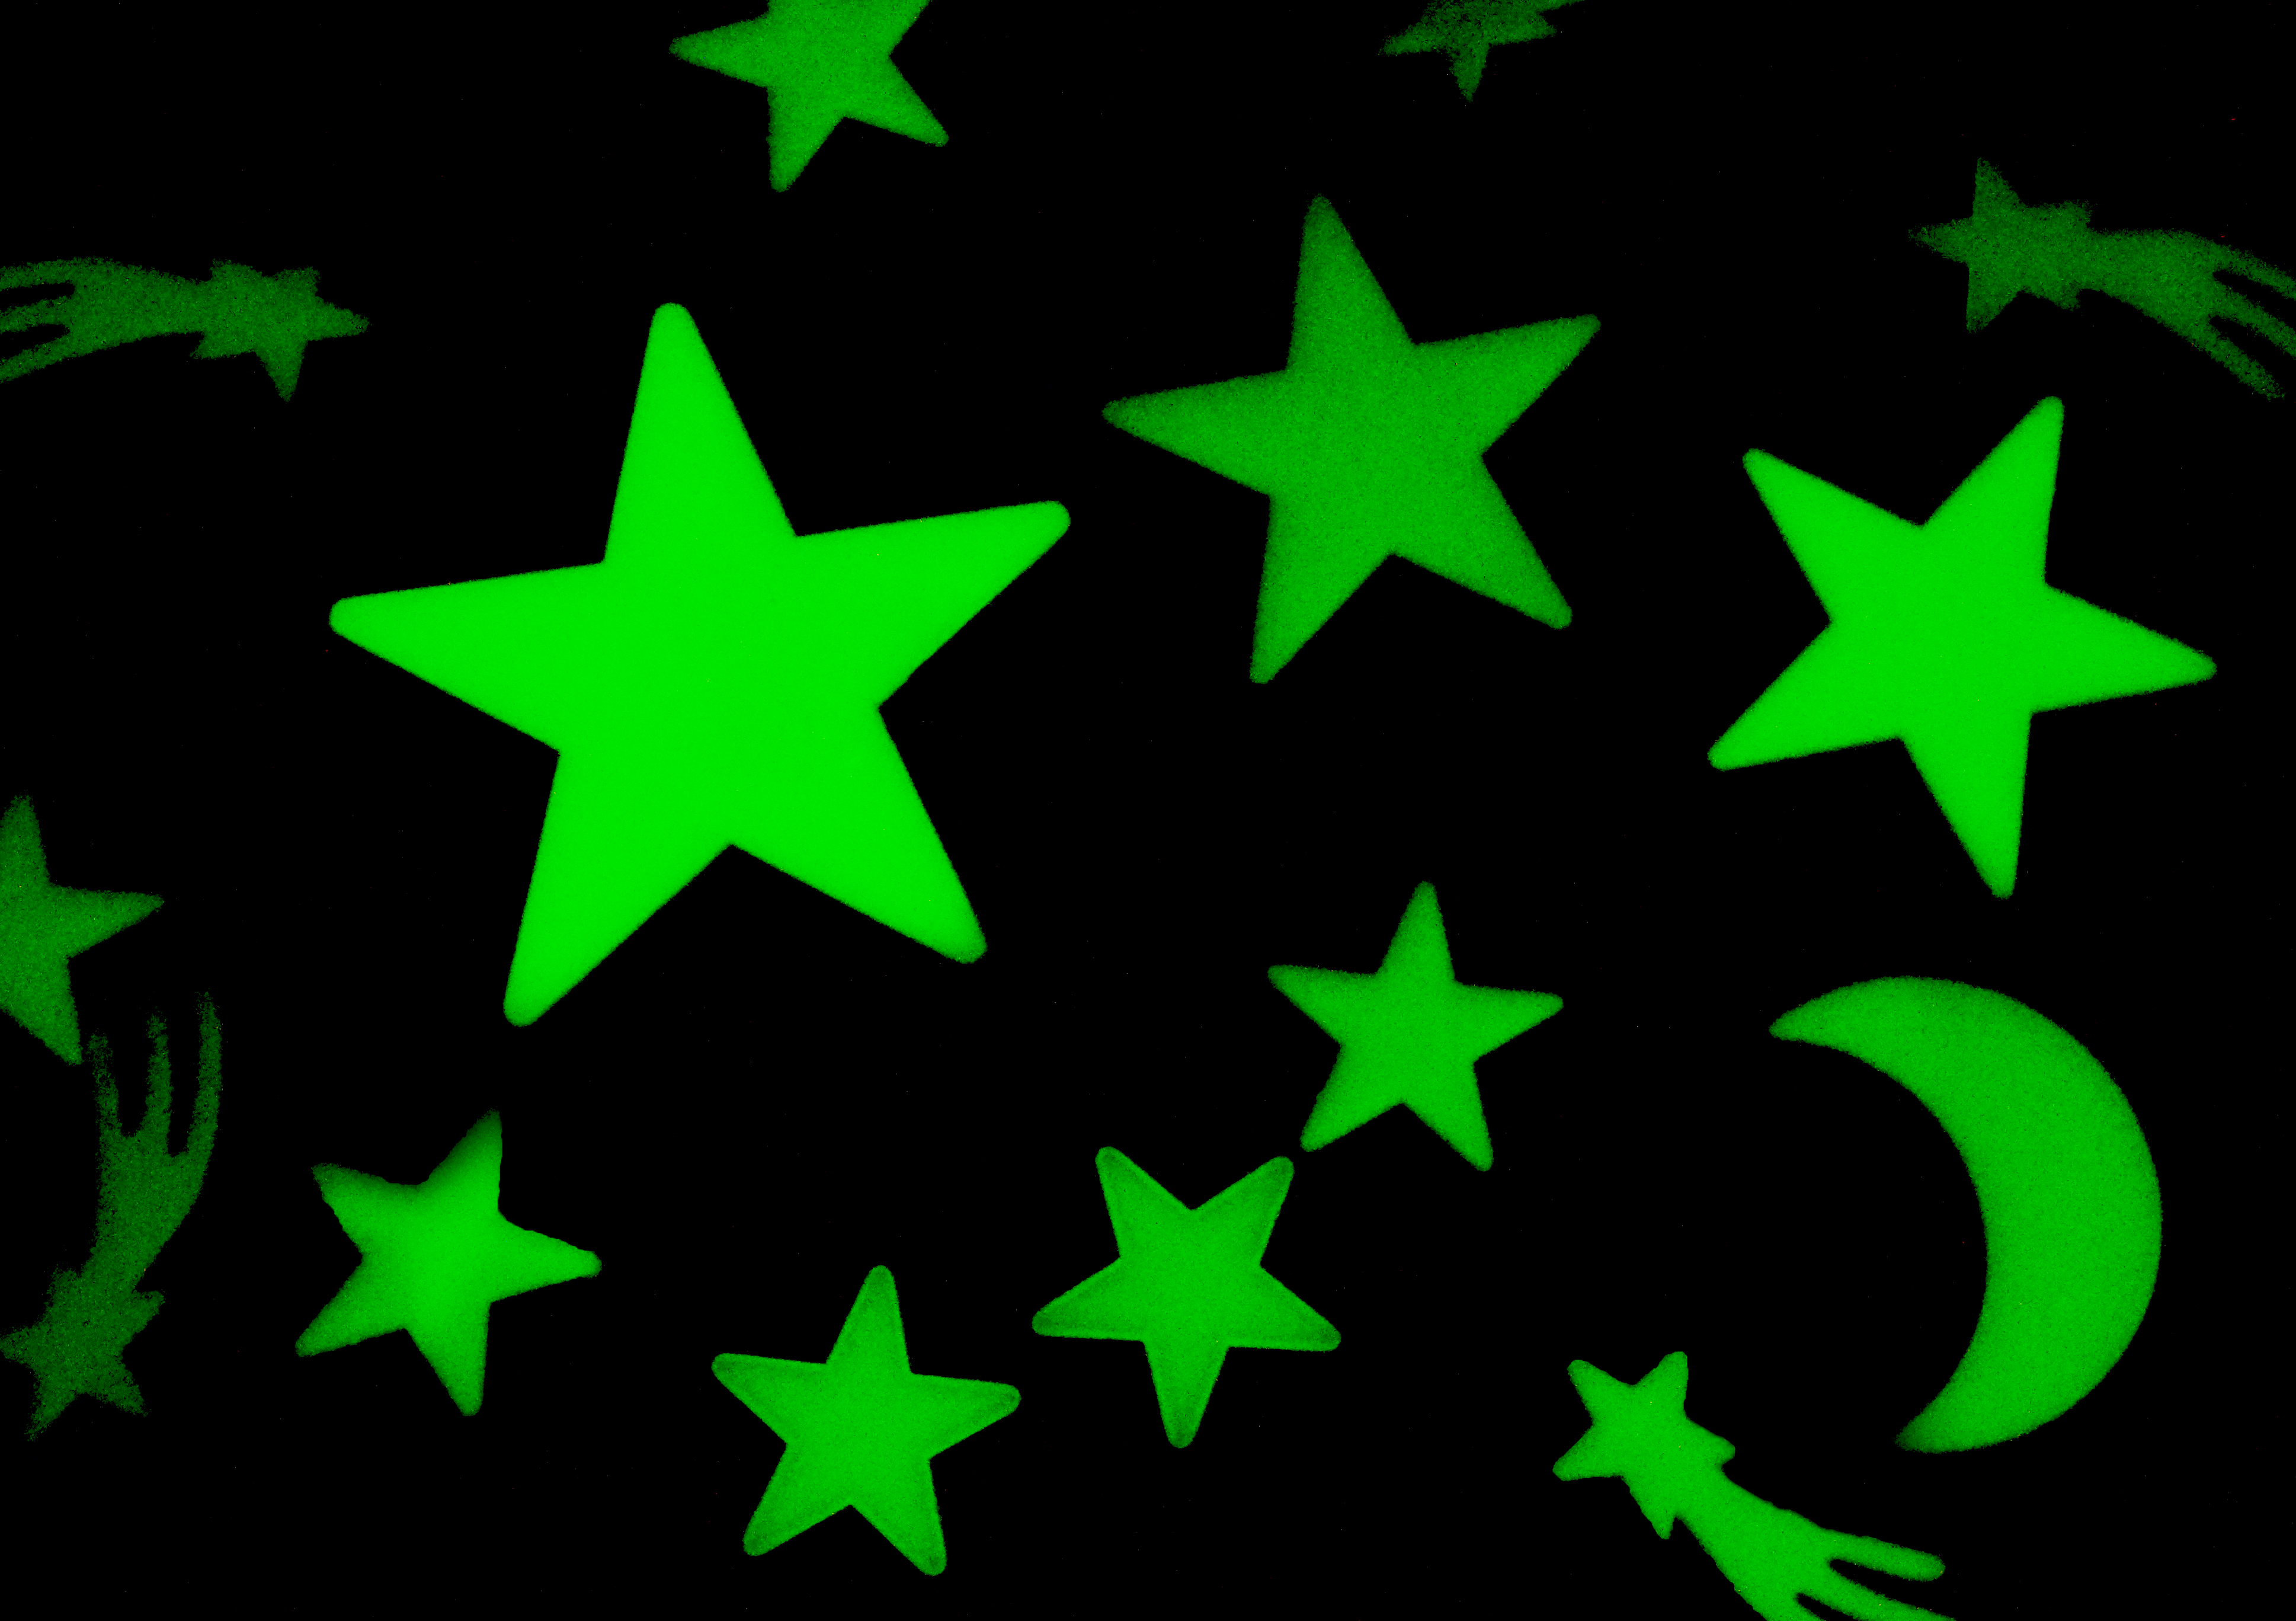 How Glow In The Dark Stars Work